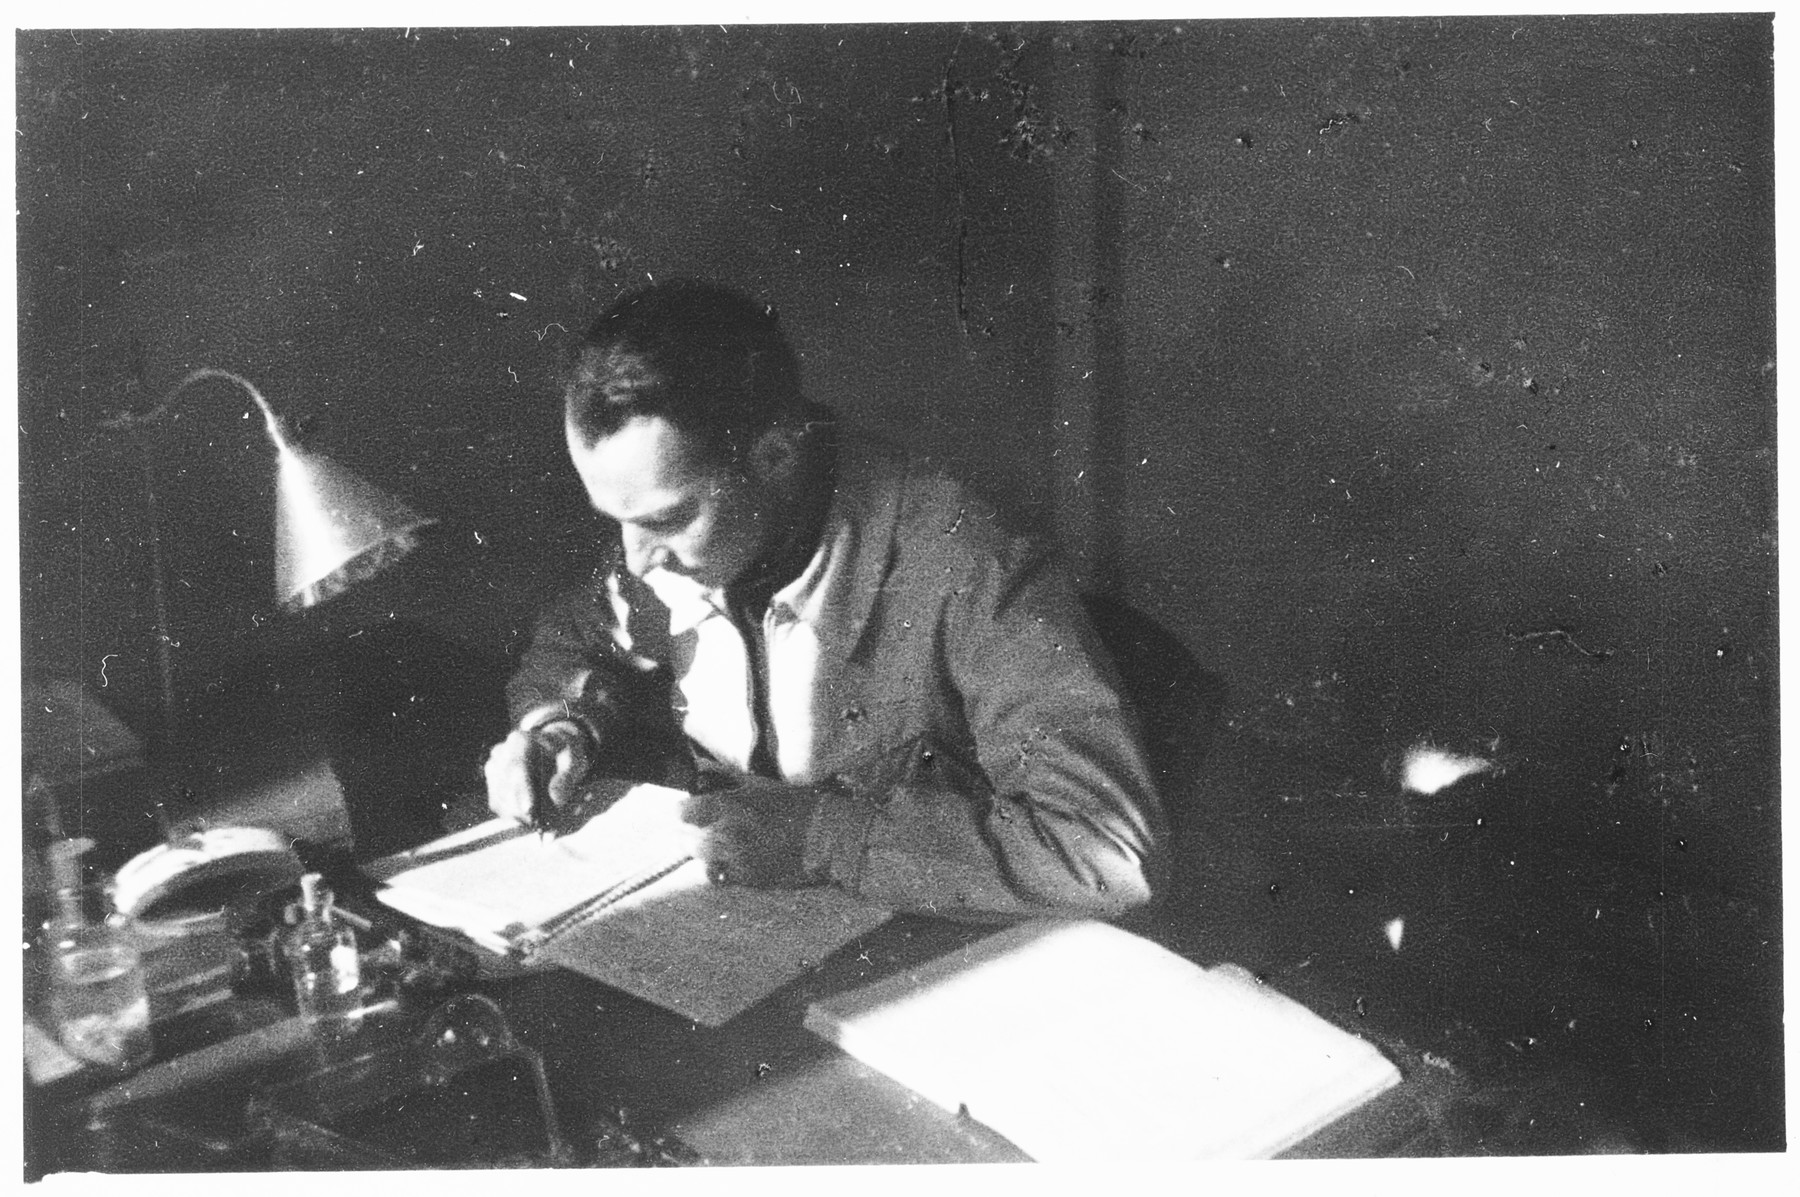 Otto Giniewski (later Etan Guinat), a Zionist activist and leader of the Armée Juive, writes at his desk at the University of Grenoble.